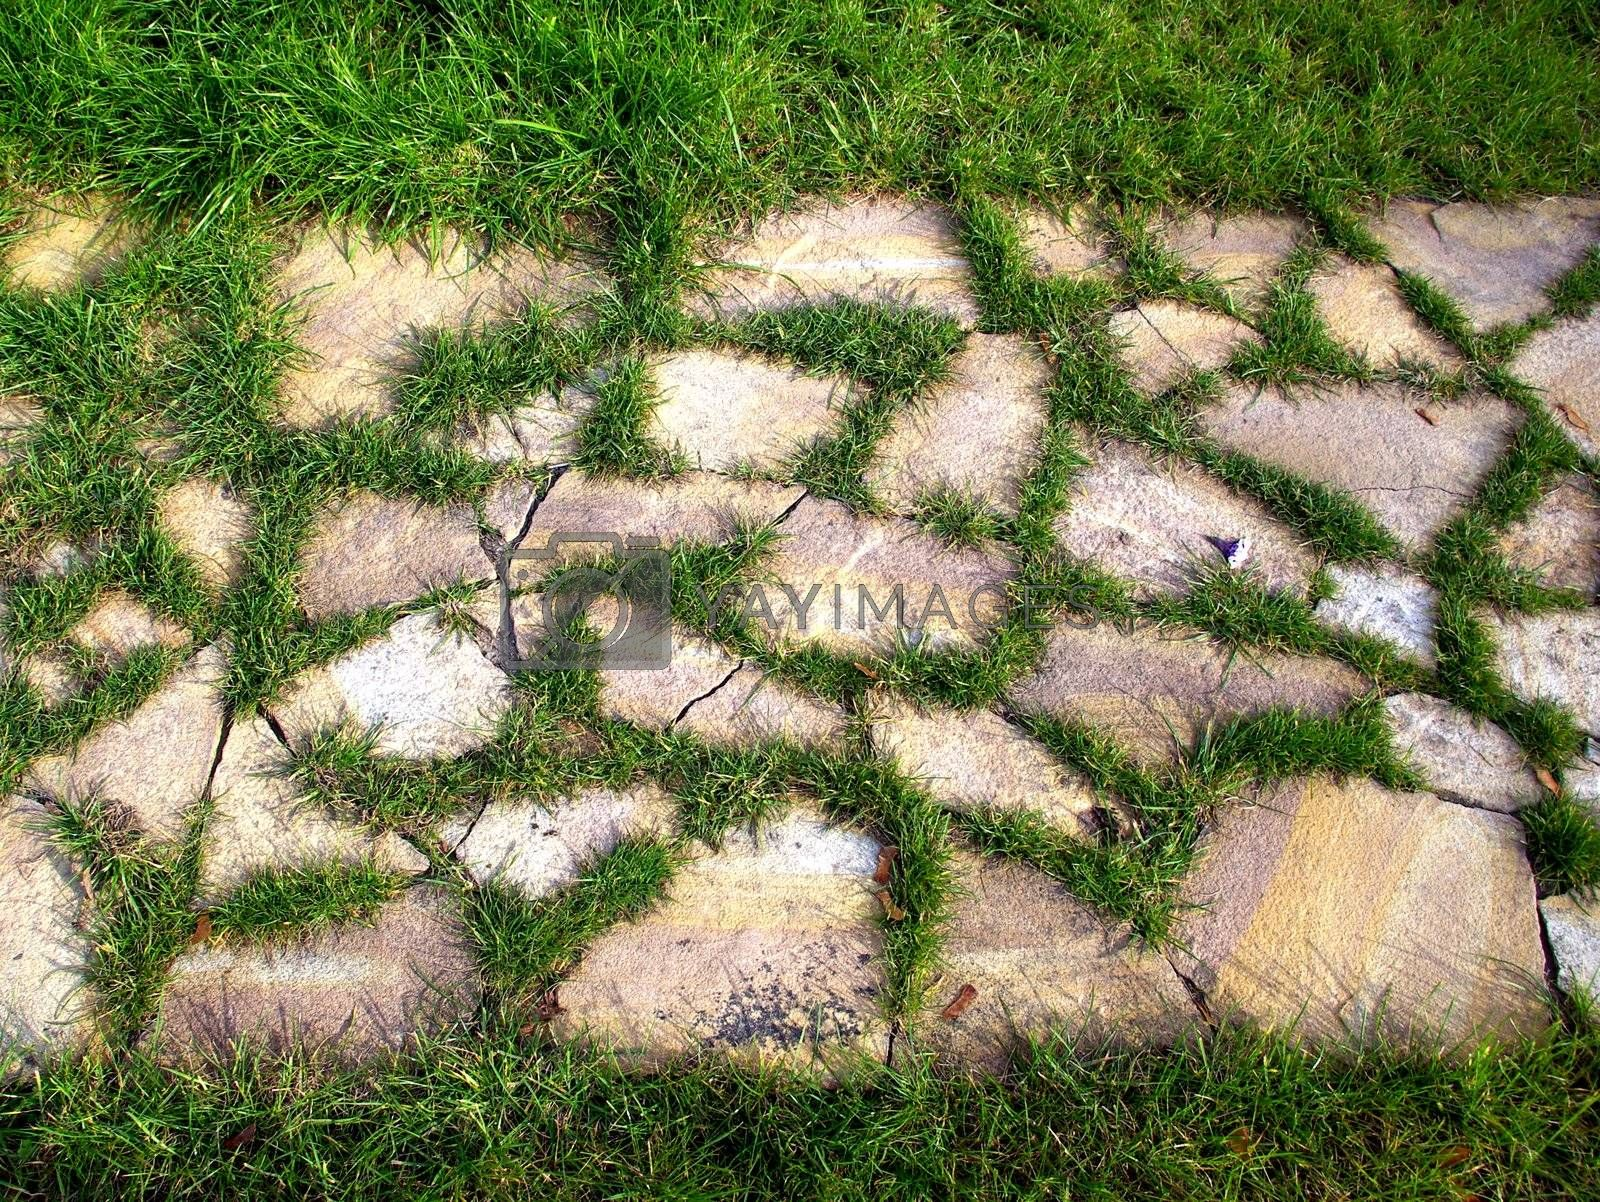 A path is laid out from a stone